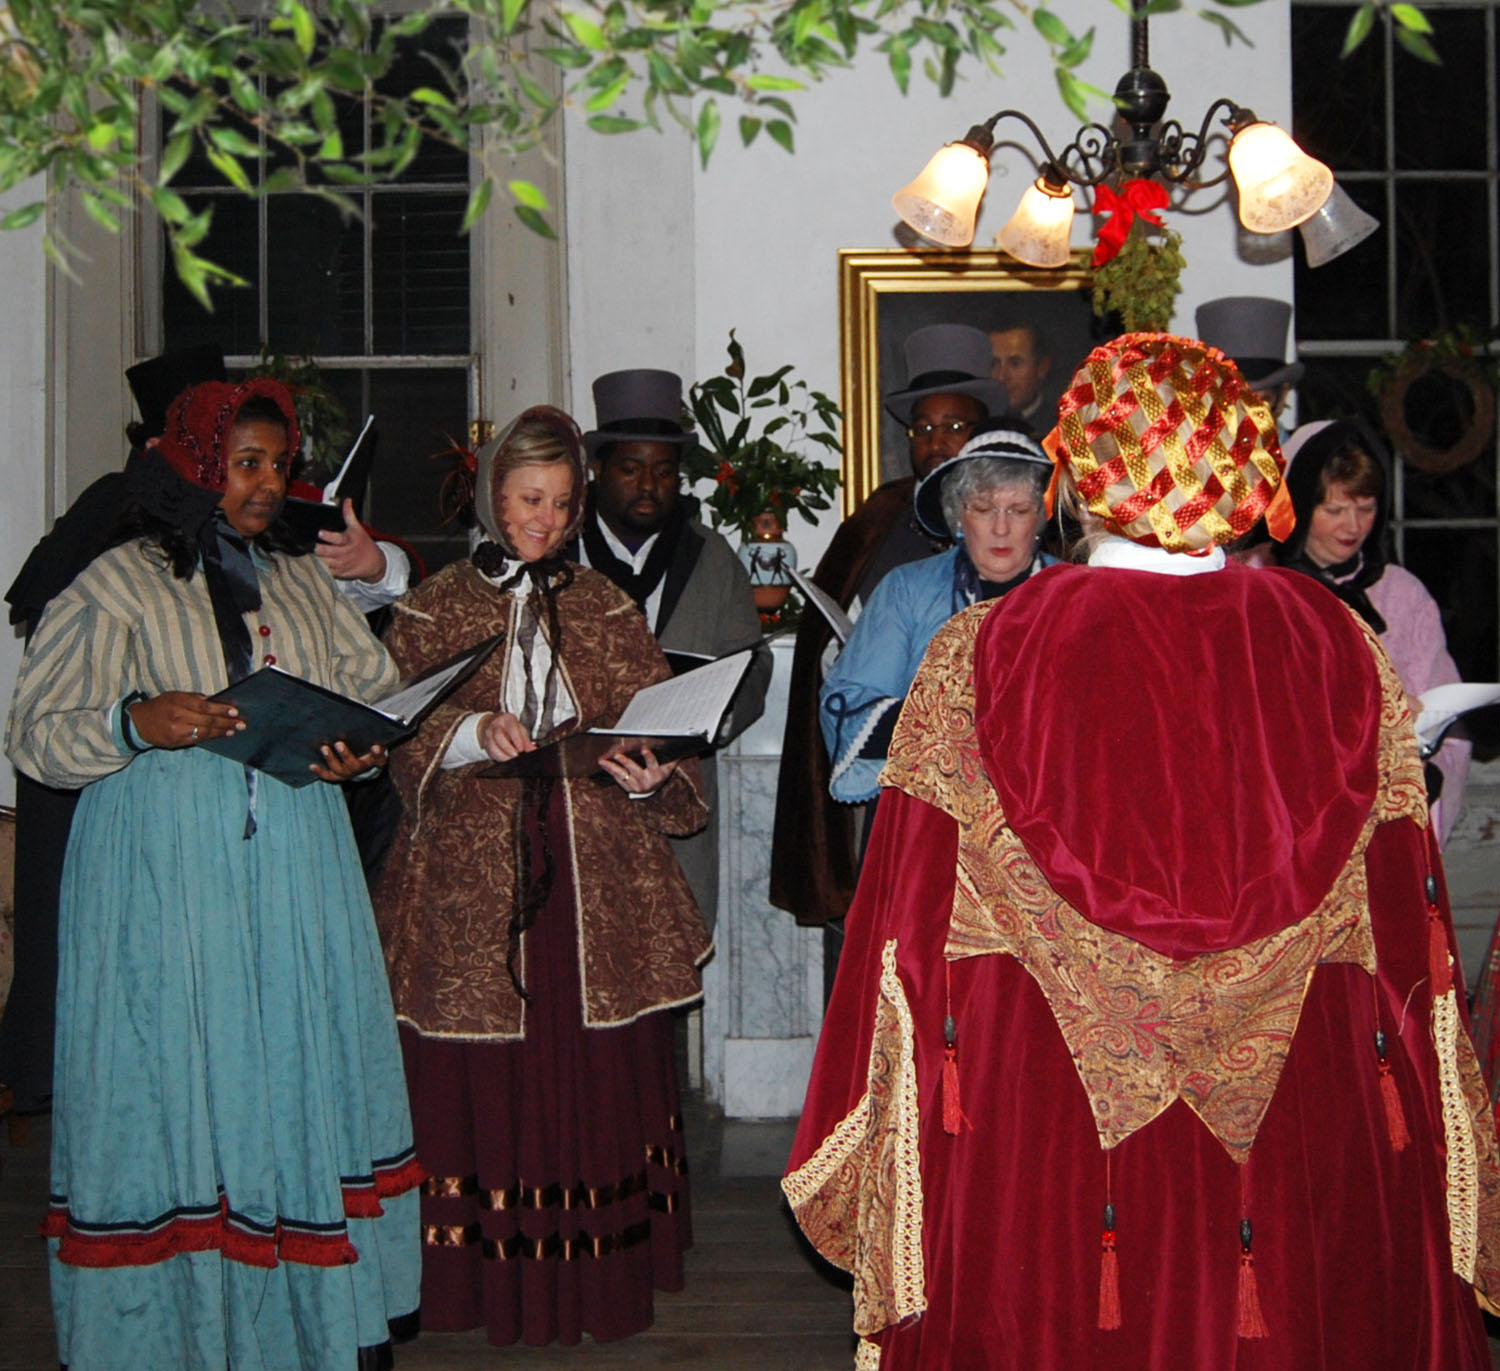 https://alabama-travel.s3.amazonaws.com/partners-uploads/photo/image/5f237f1697e8b70008b9946e/dickens carolers.jpg